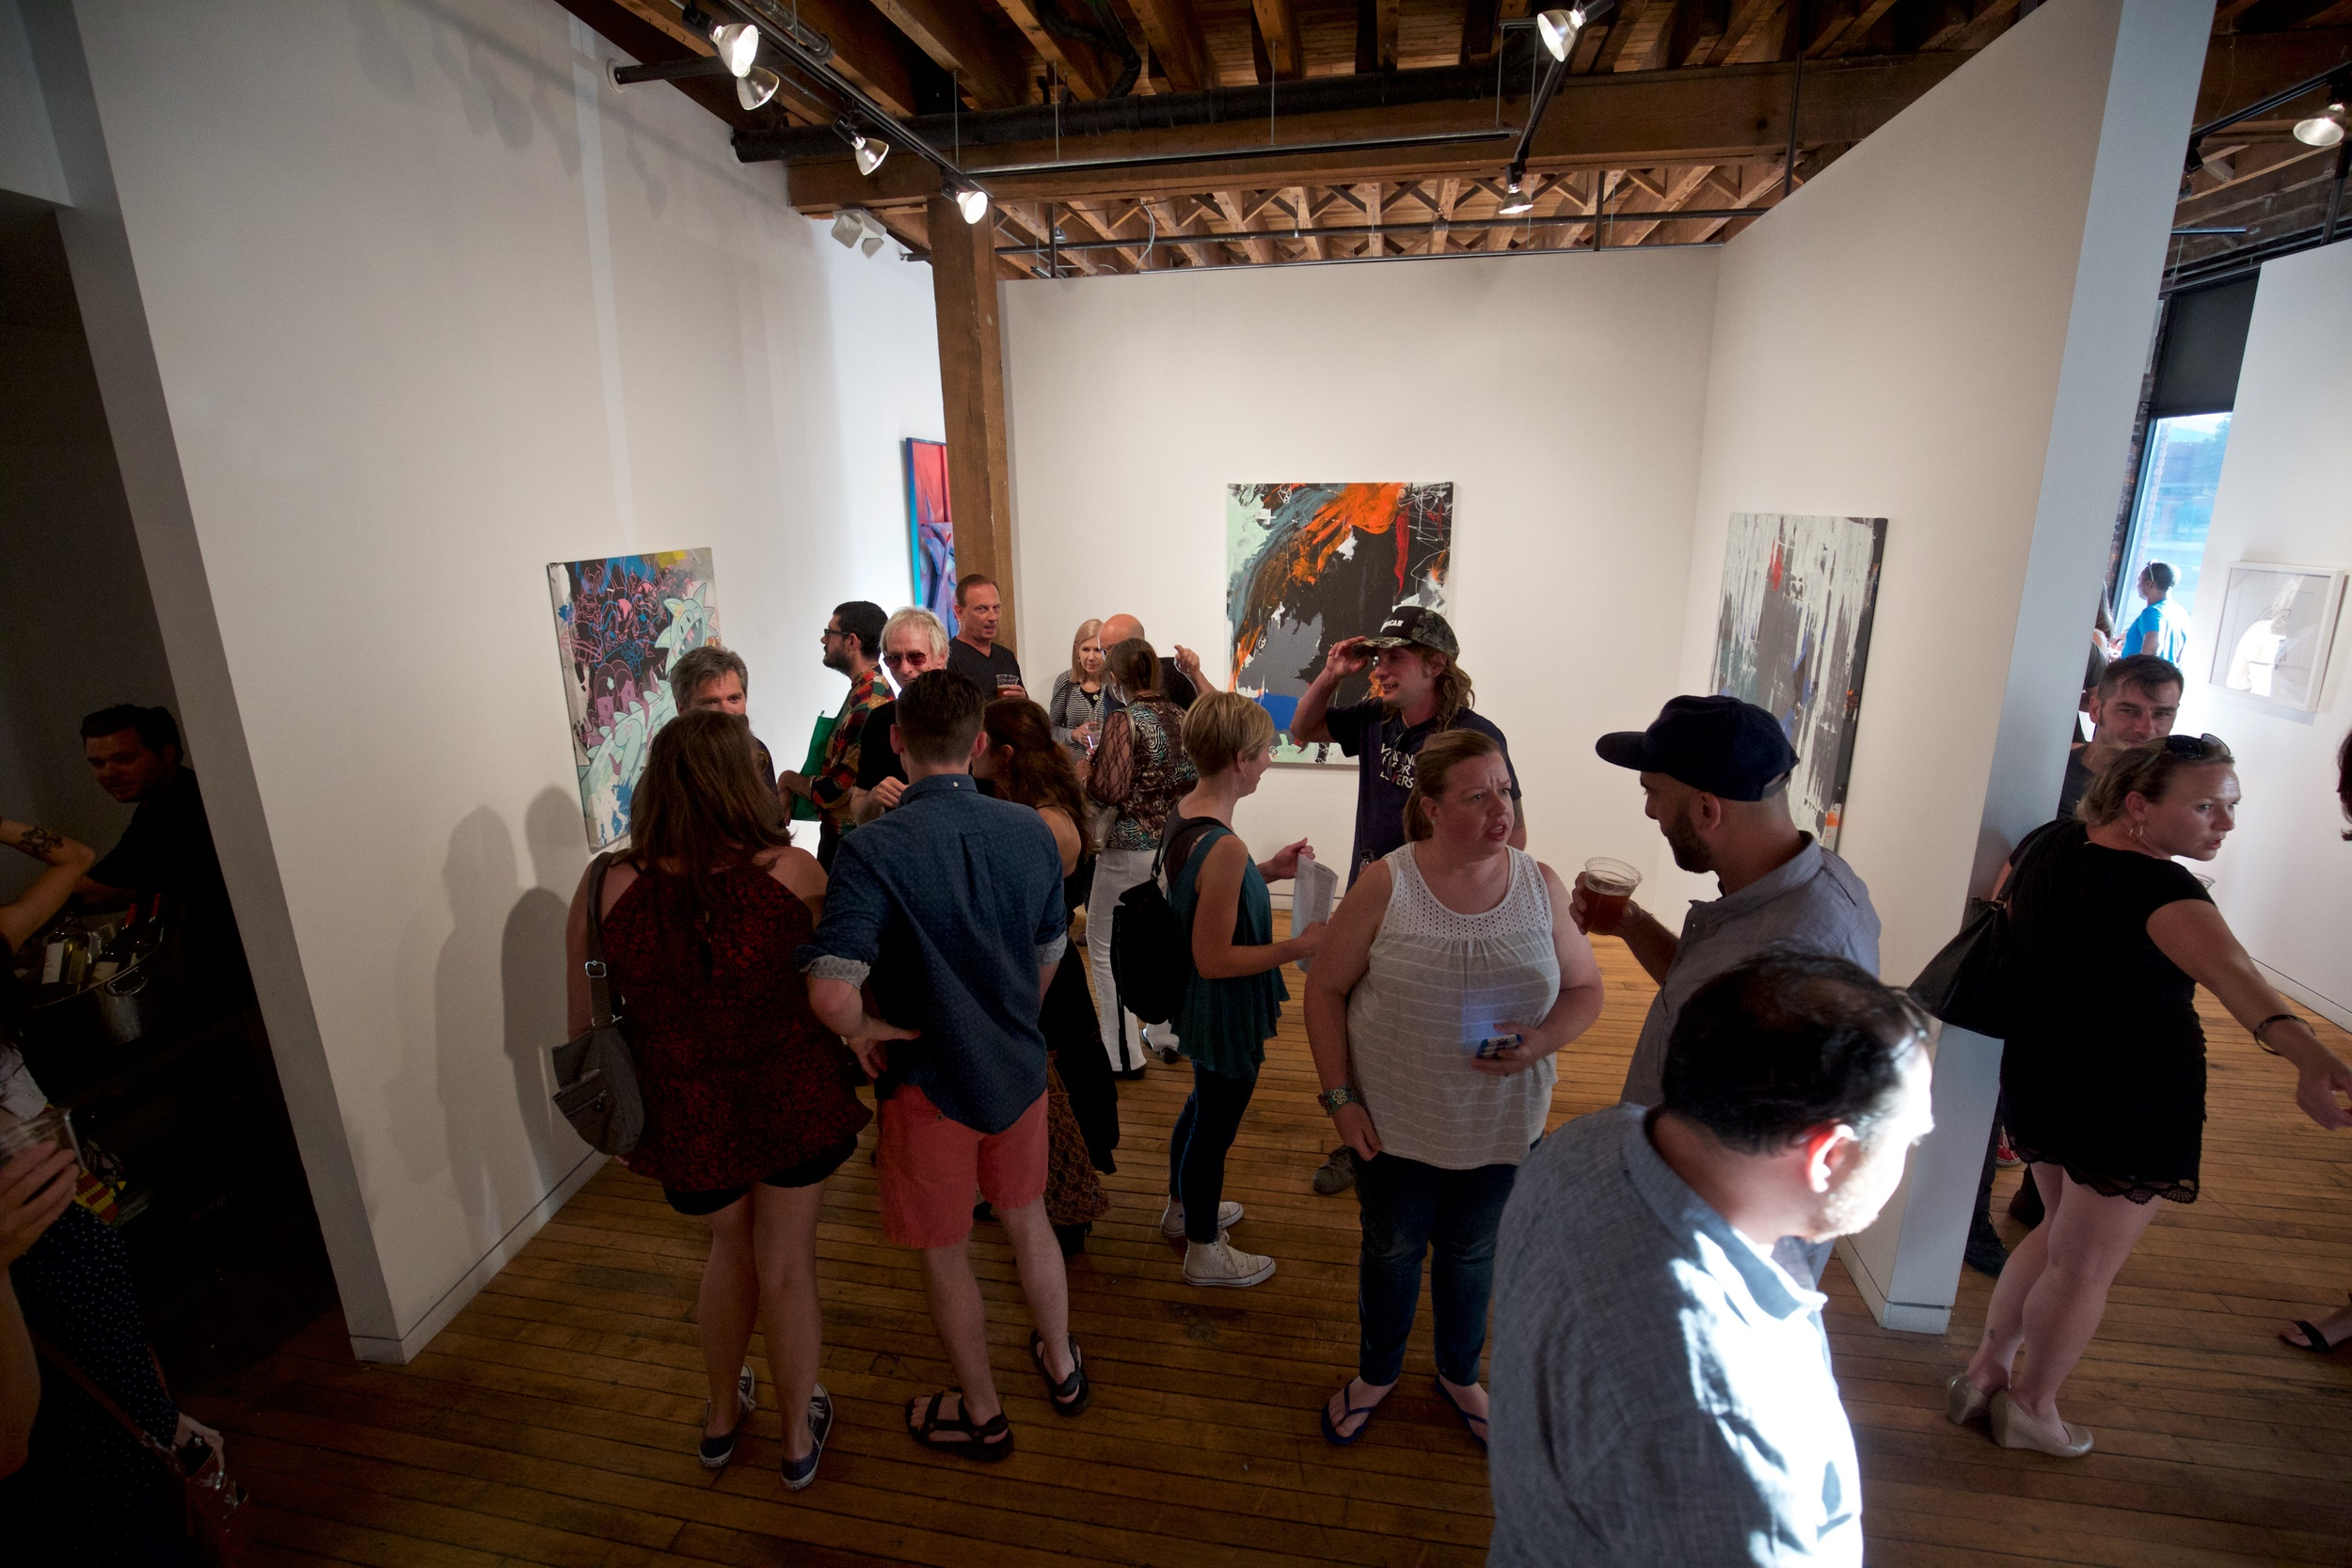 kwest-persue-jarus_inner-state-gallery_july152016_opening-night 28.jpg